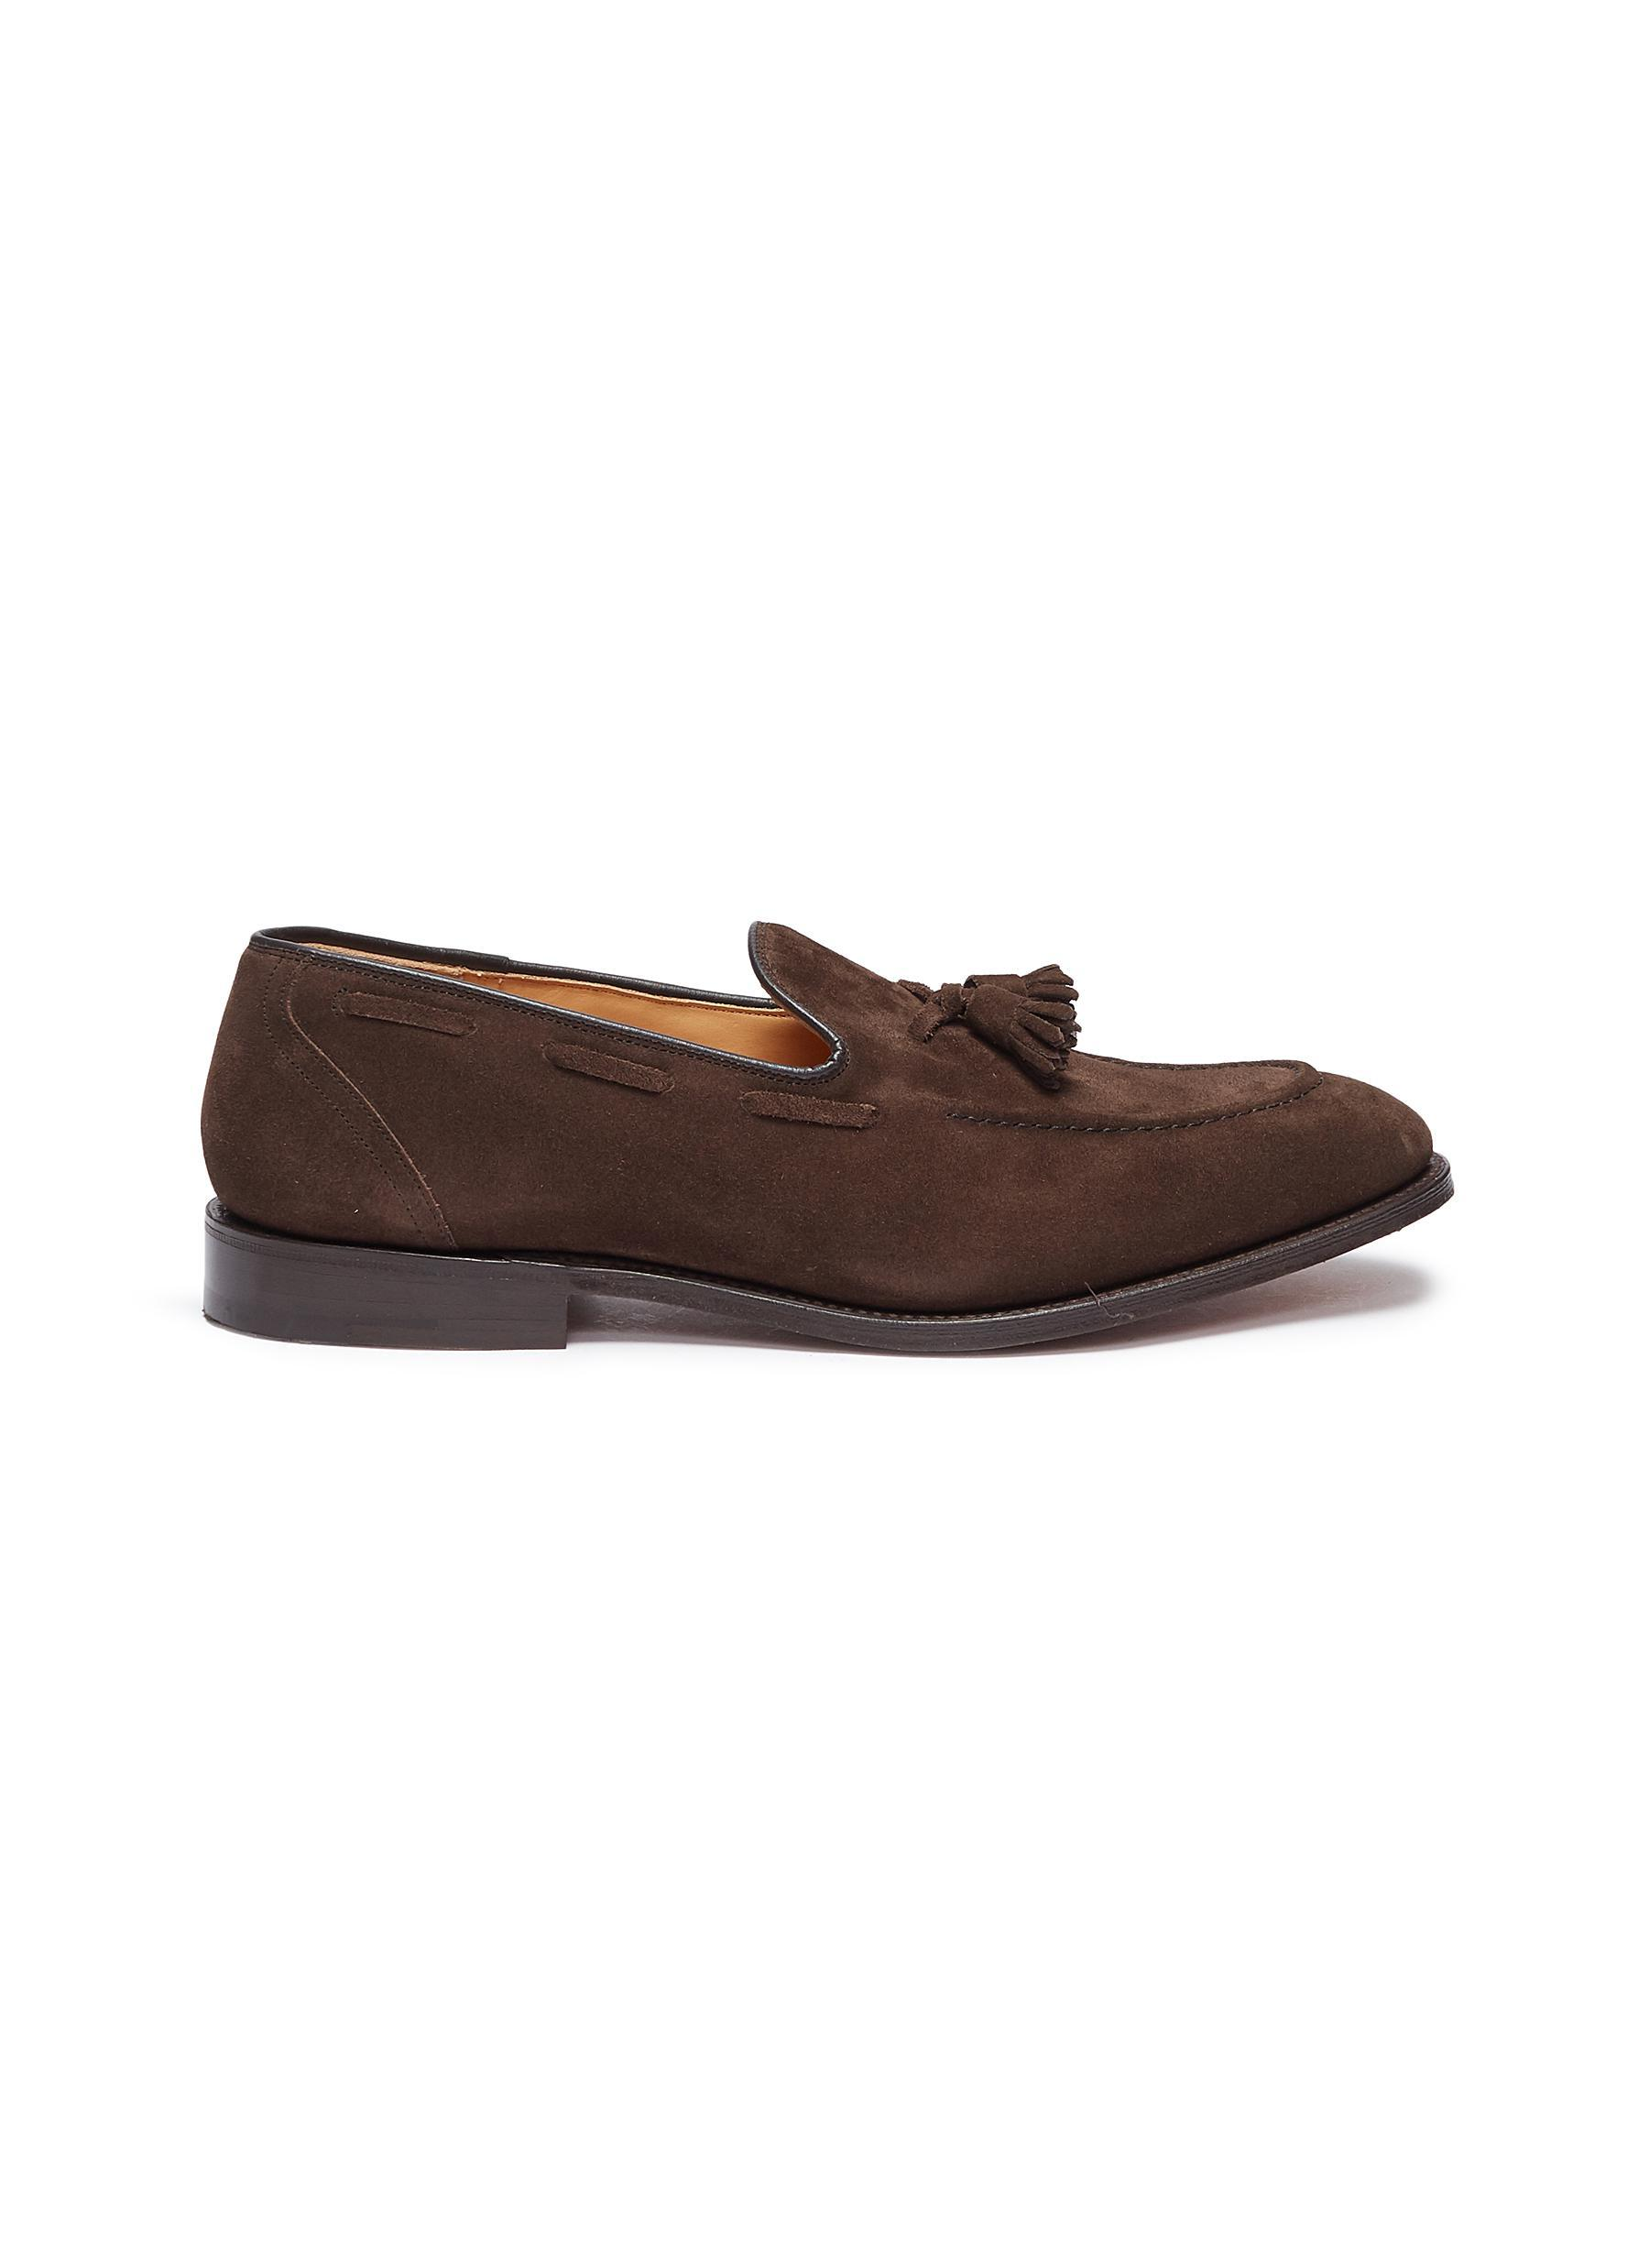 a5e2c10c617 Lyst - Church s  kingsley 2  Tassel Suede Loafers in Brown for Men